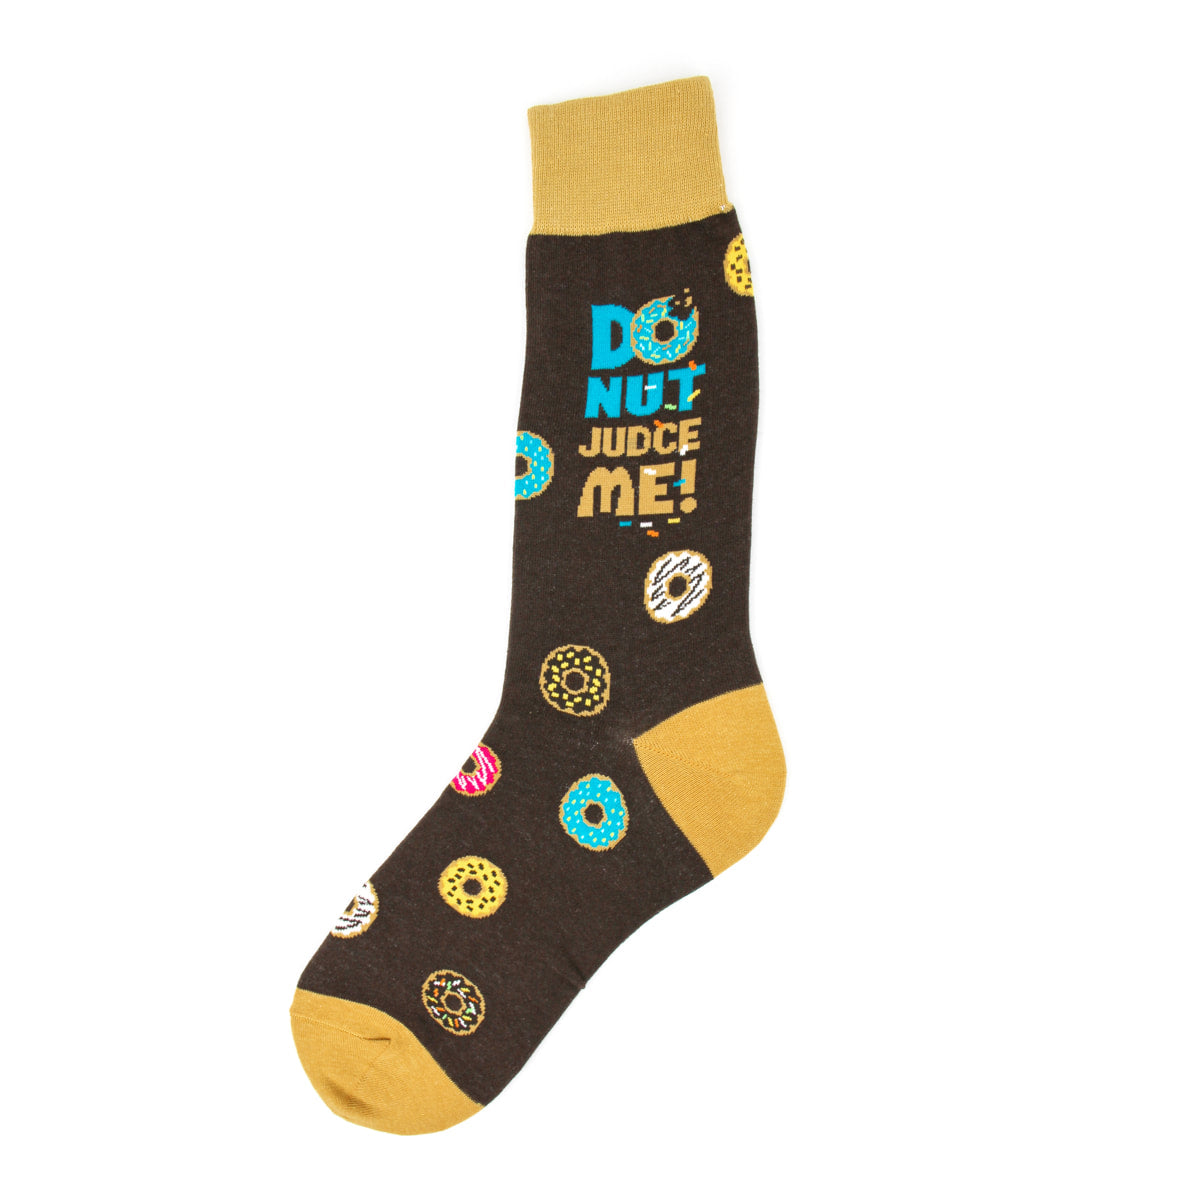 Foot Traffic - MEN'S DONUT JUDGE ME SOCKS